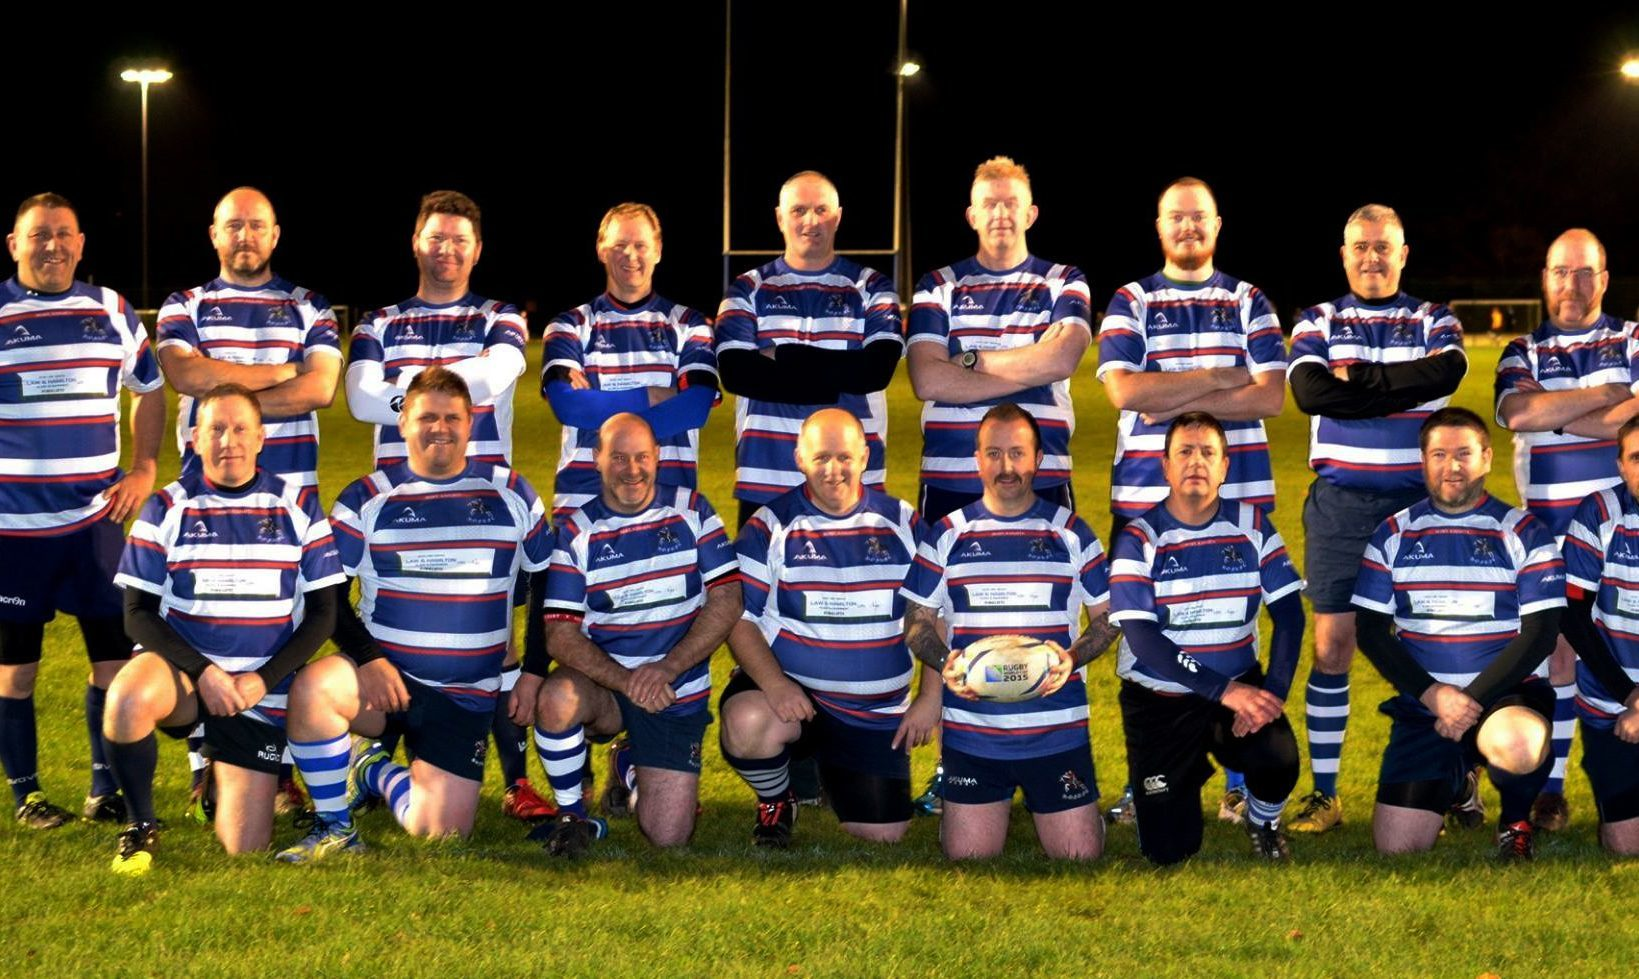 Players from the veteran Howe of Fife Knights team were called into action in the club's moment of need.